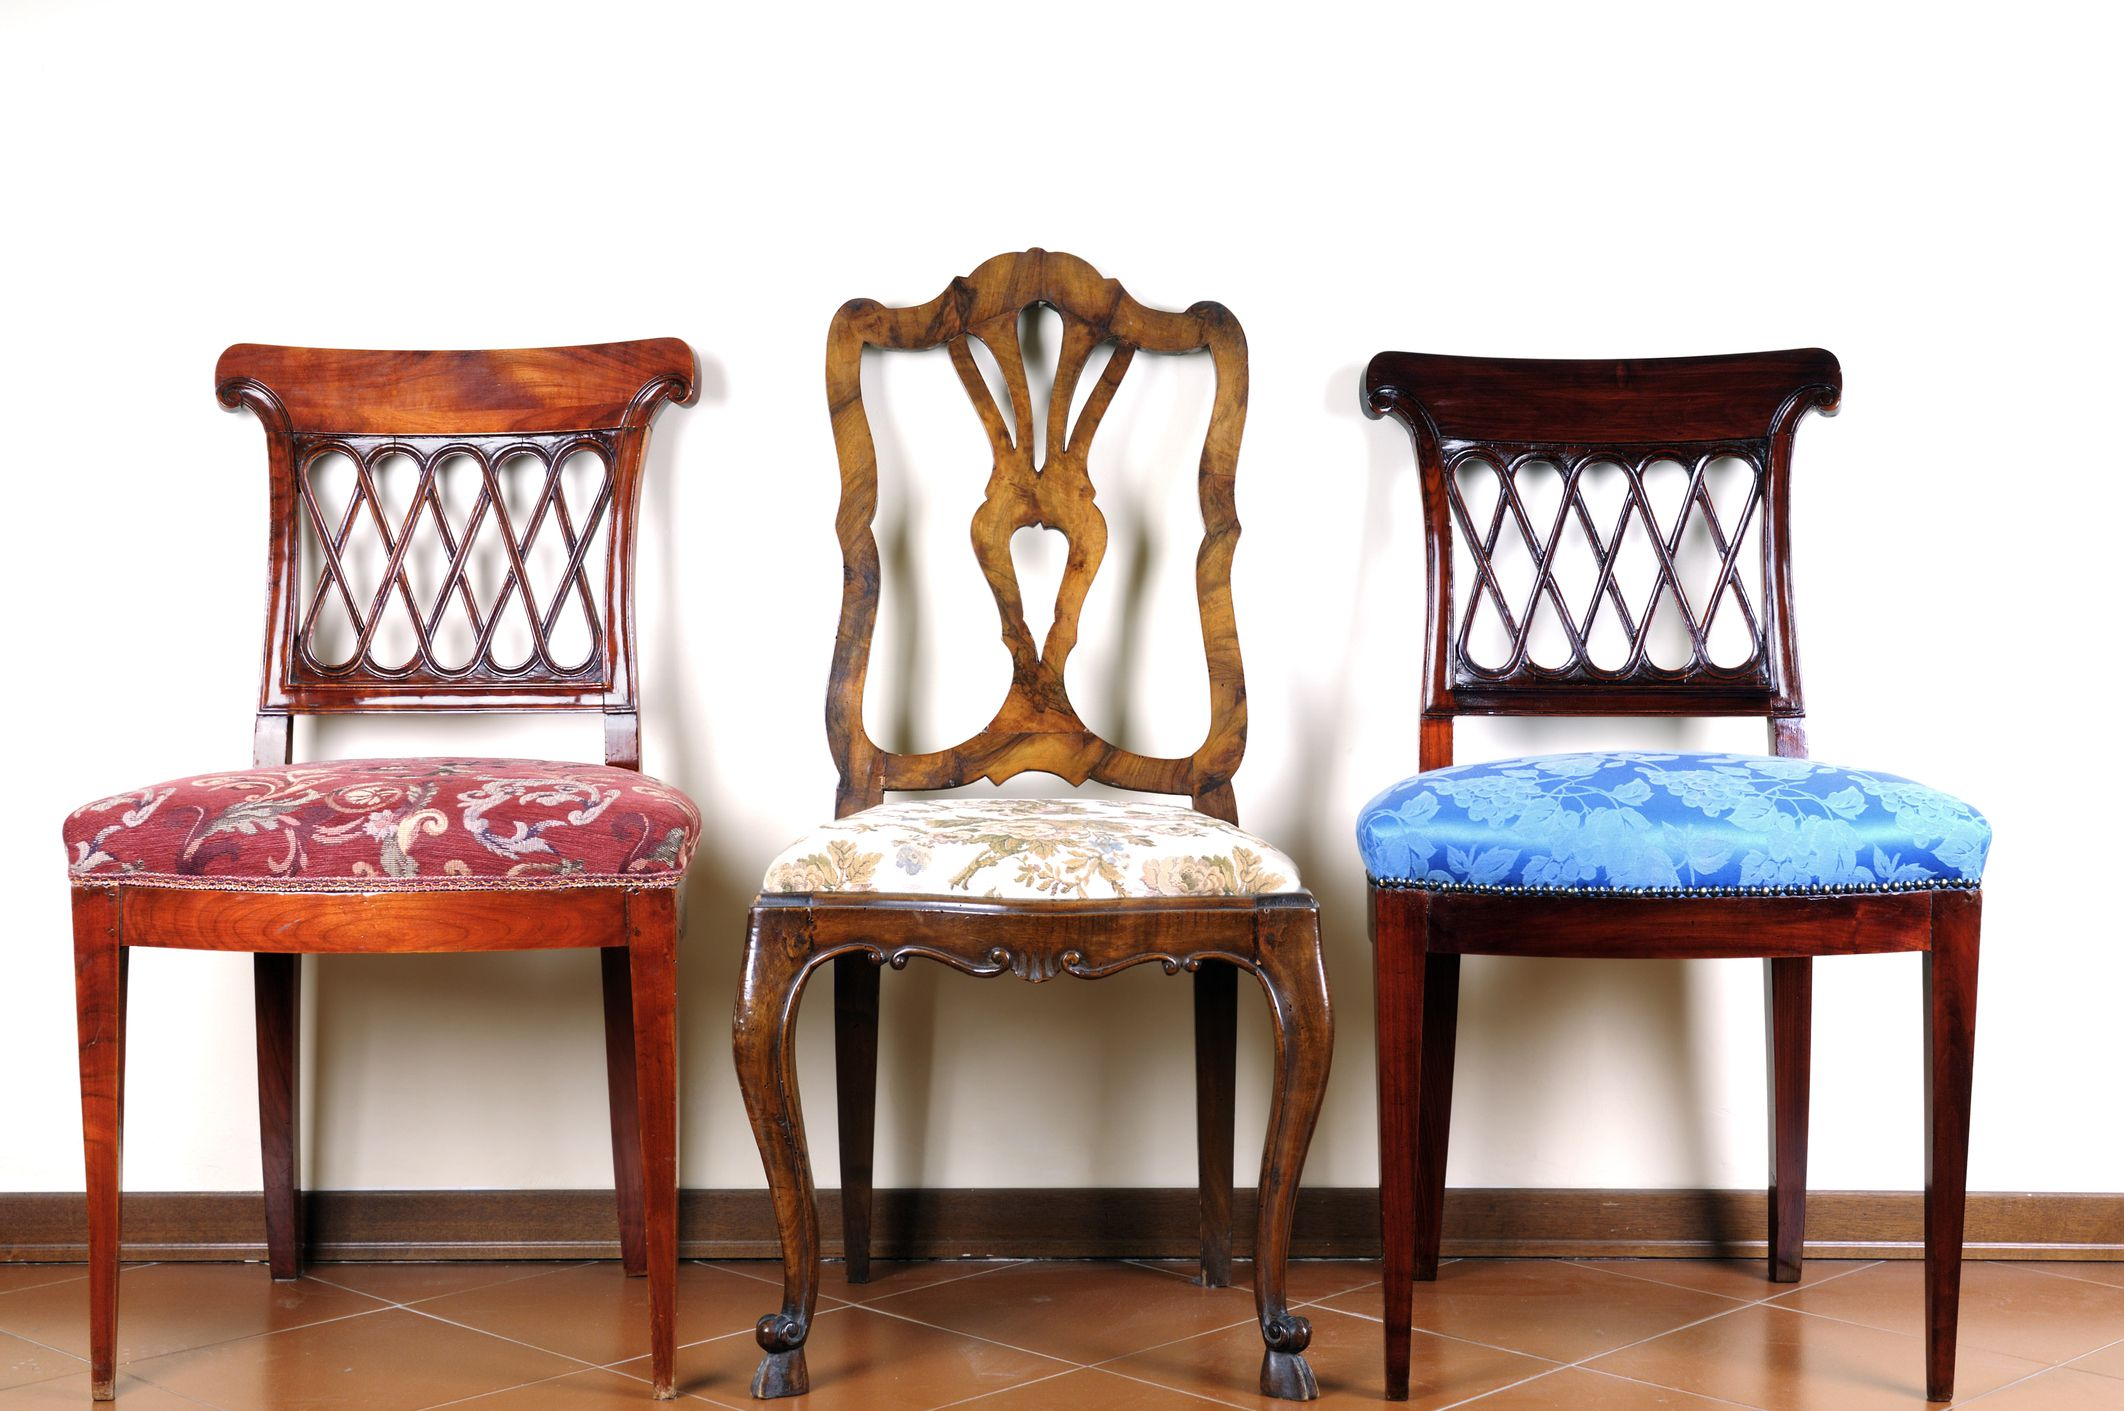 History of the Arts and Crafts Movement